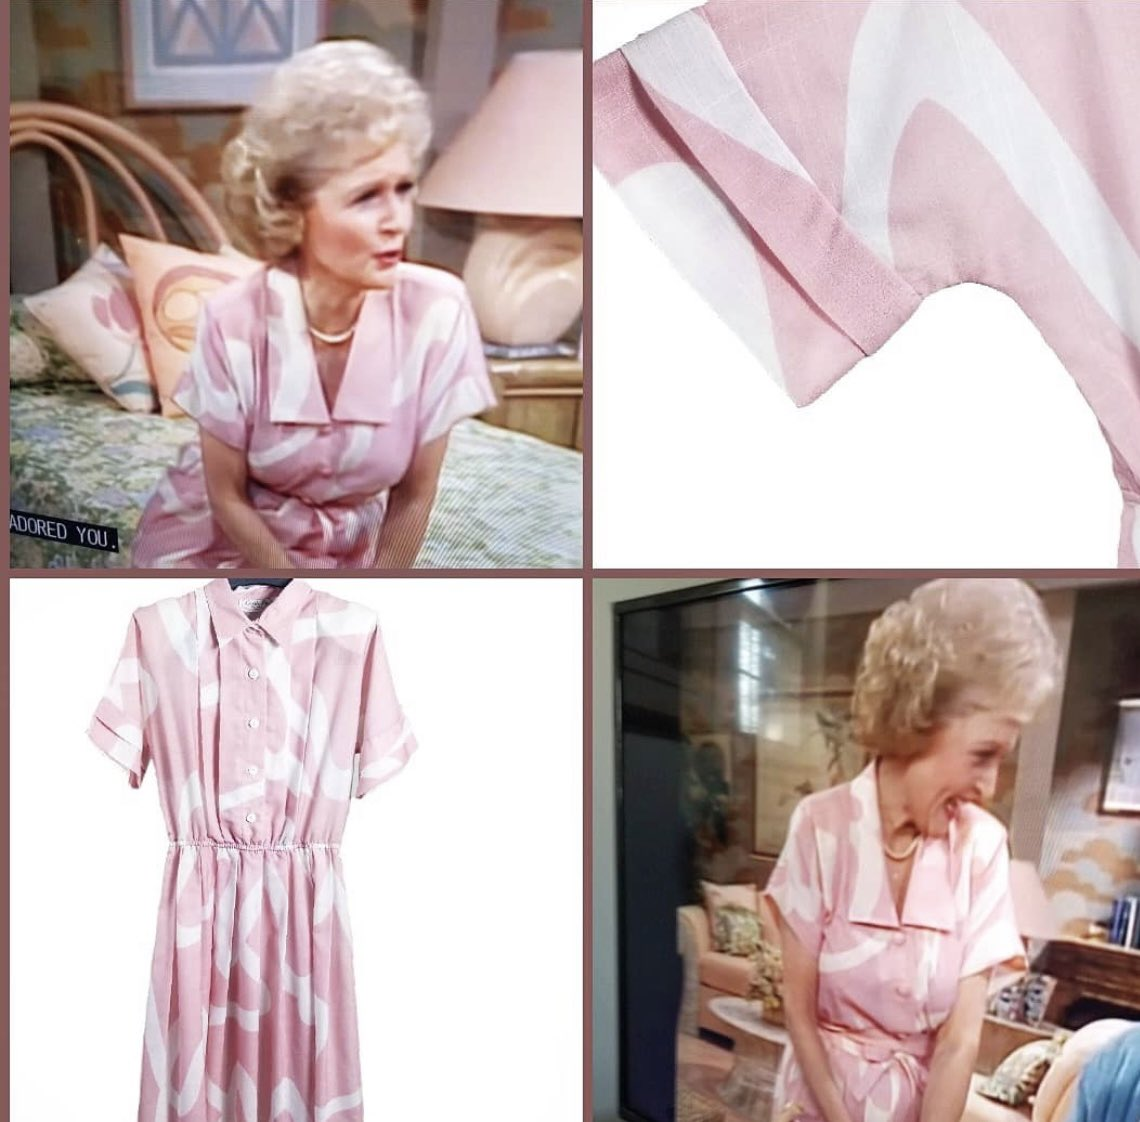 I JUST bought this dress, same as the one betty white wore in #goldengirls and am going to try to get betty to autograph and auction for charity for her 100th birthday! 🤞 now to research her favorite animal rights animal shelter #bettywhite #goldengirls